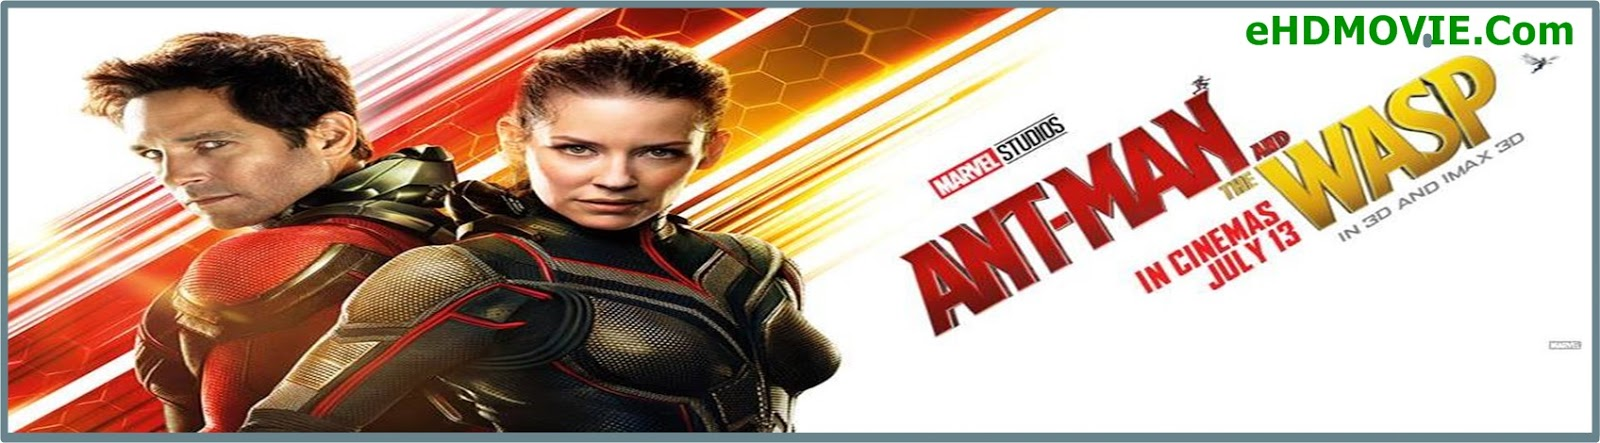 Ant-Man and the Wasp 2018 Full Movie Dual Audio [Hindi – English] 1080p - 720p - HEVC - 480p ORG WEB-DL 350MB - 550MB - 900MB - 1.7GB ESubs Free Download